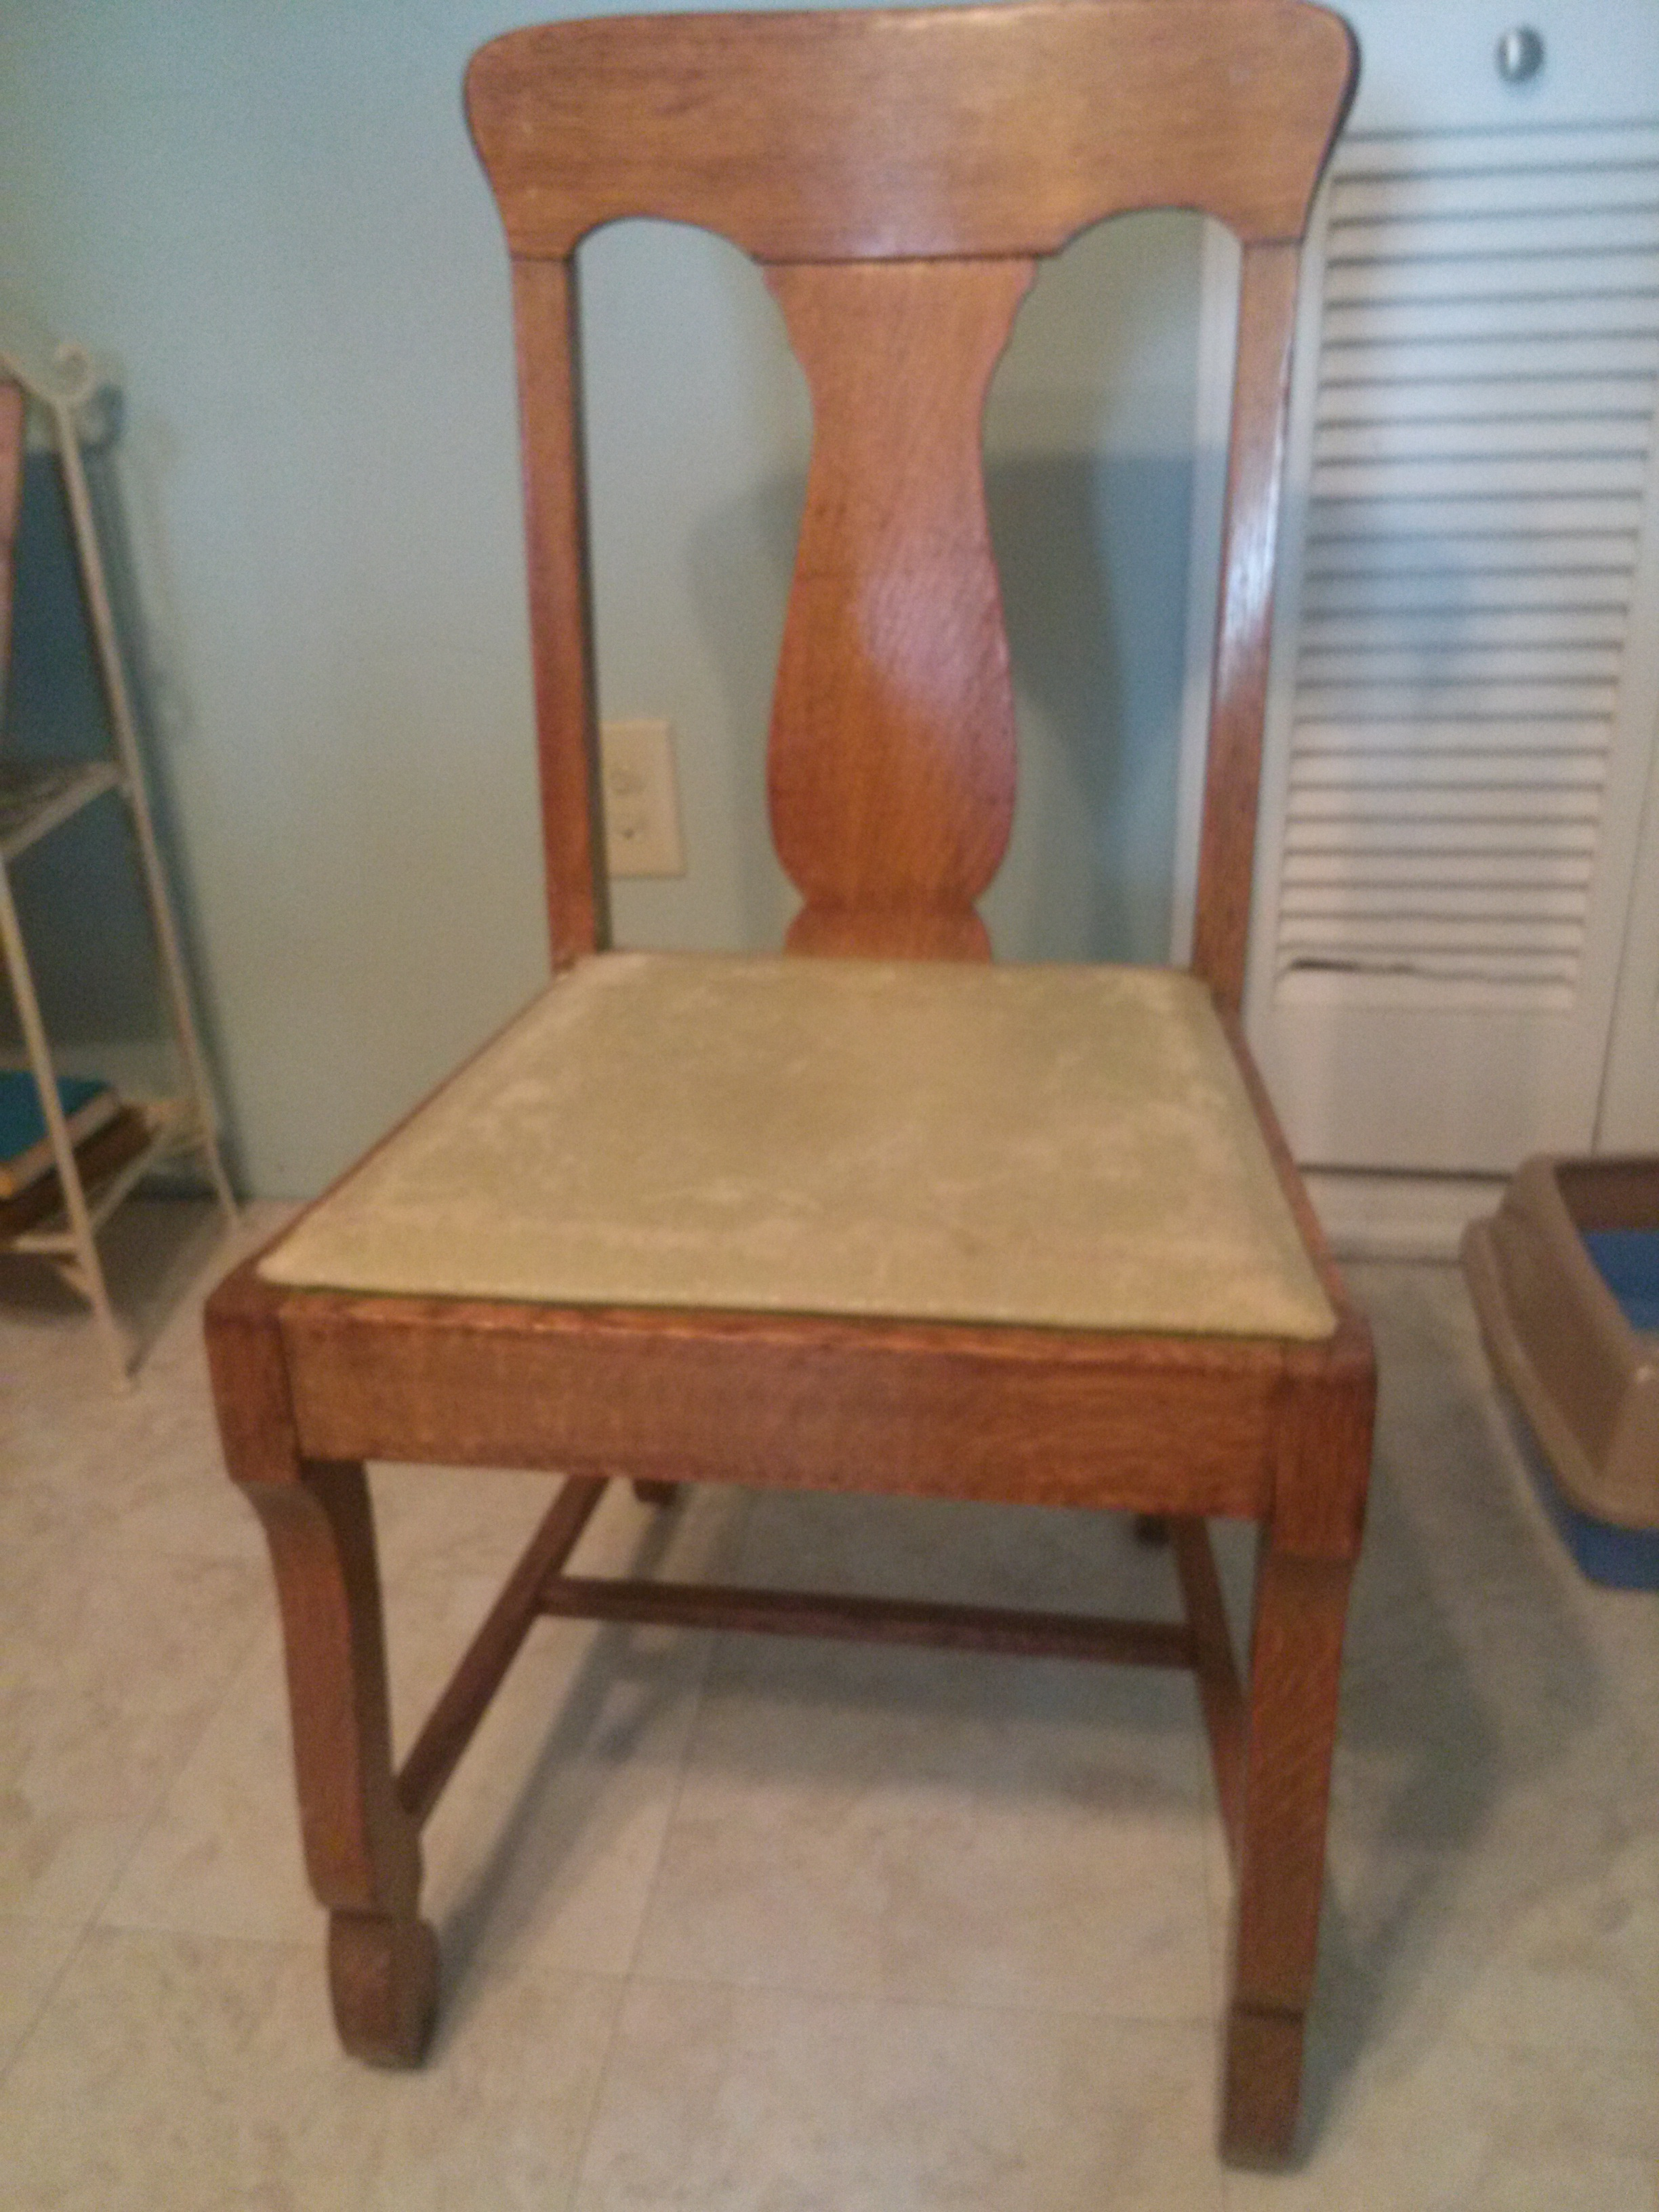 3 Antique Oak Dining Room Chair